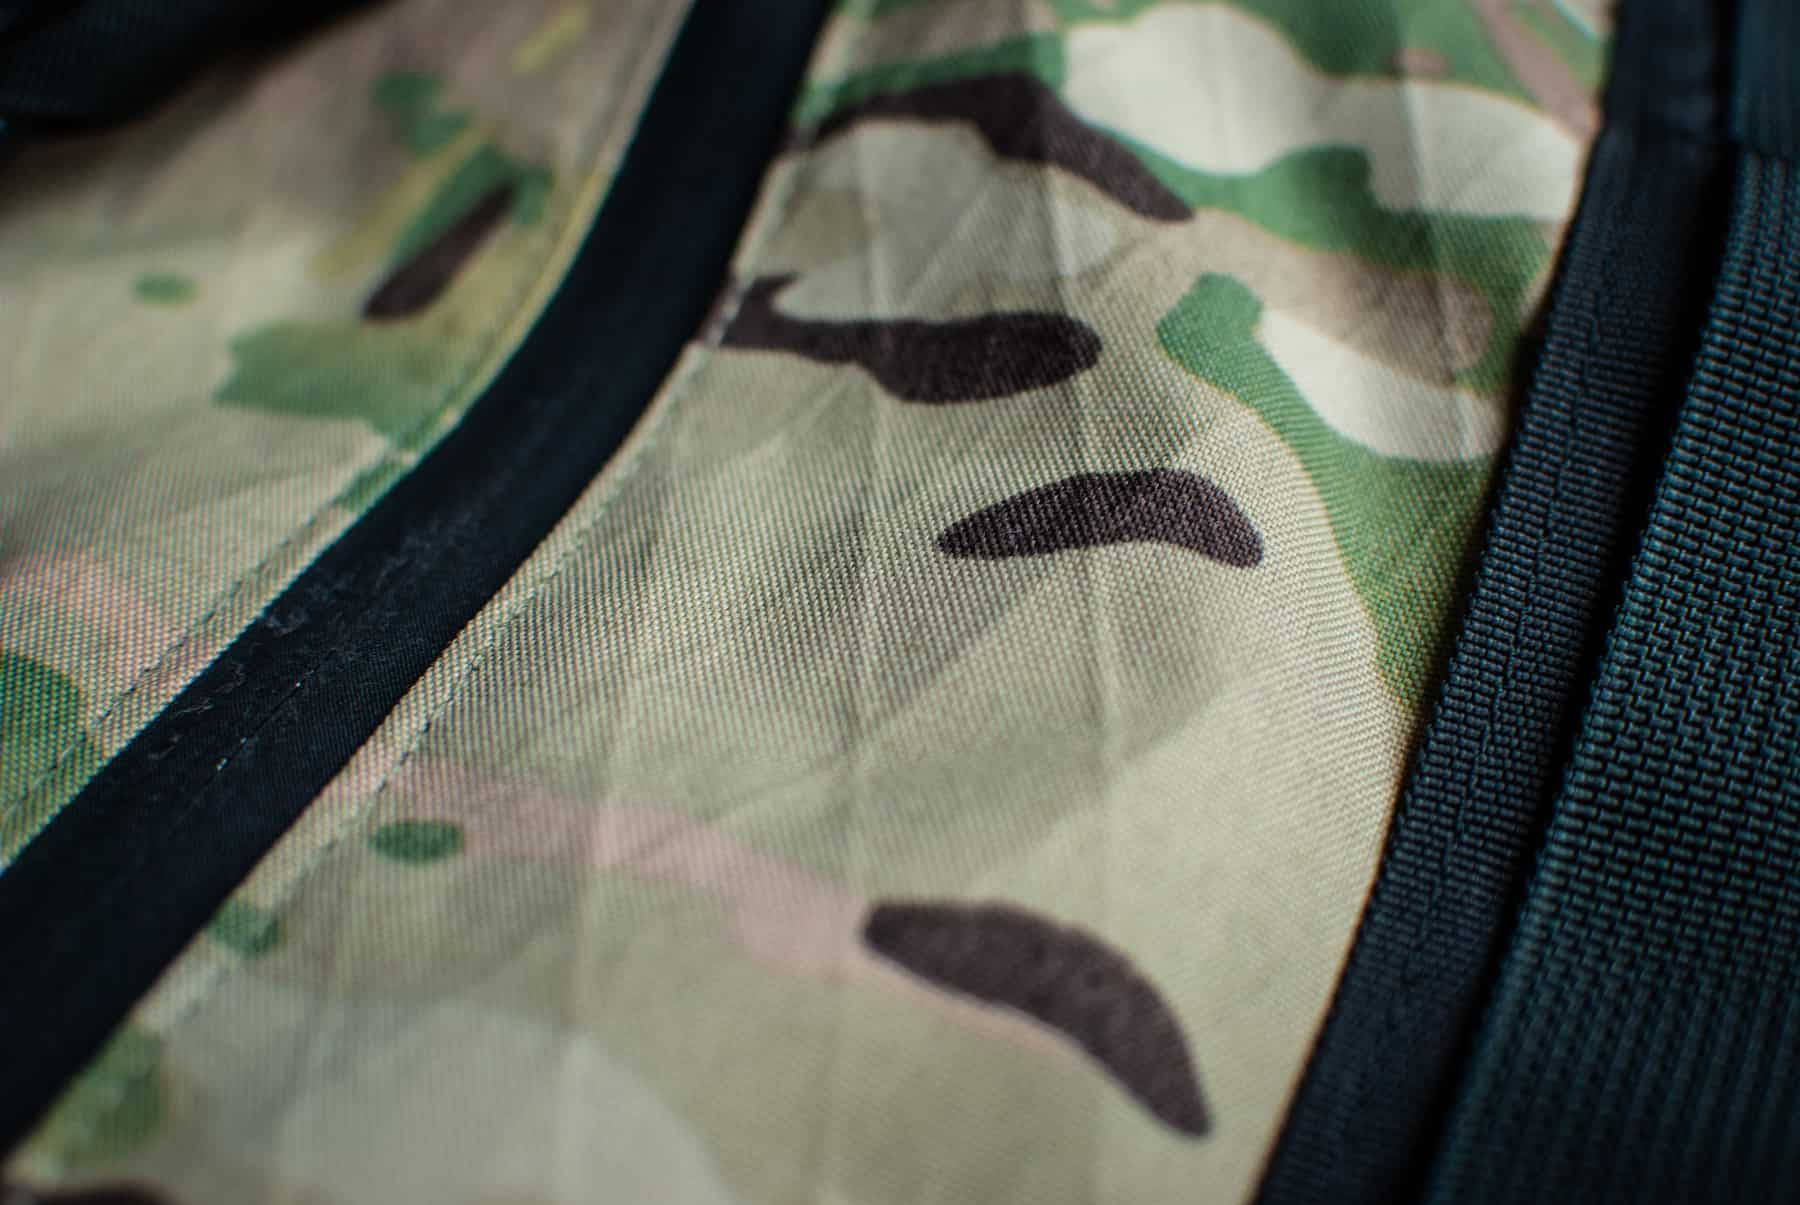 Review: Adventure Duffle Pack CDW_ADP_39_XPAC